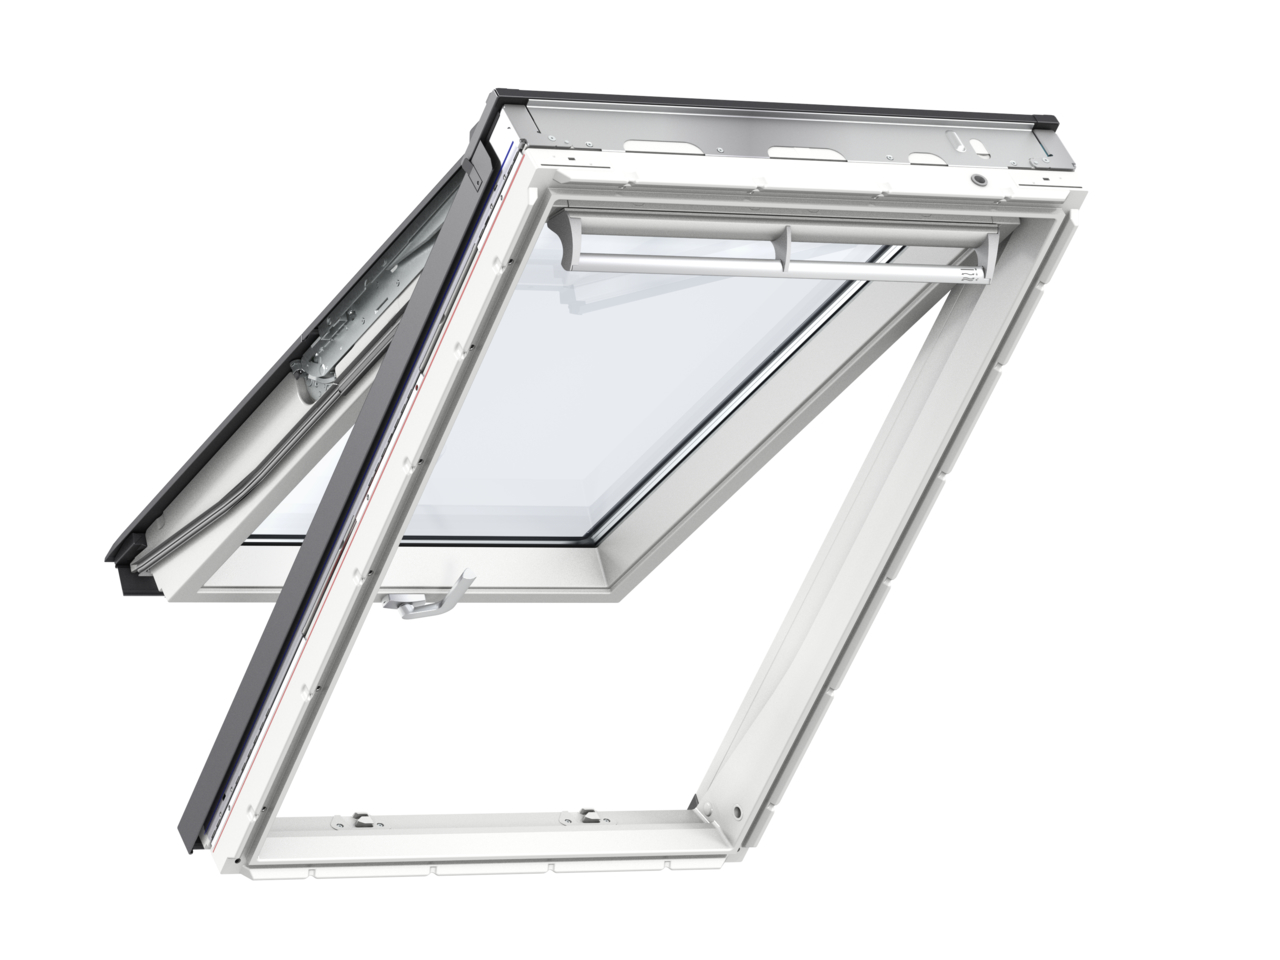 Velux GPU PK10 940 x 1600mm Top Hung Standard 70Pane Roof Window - White Polyurethane